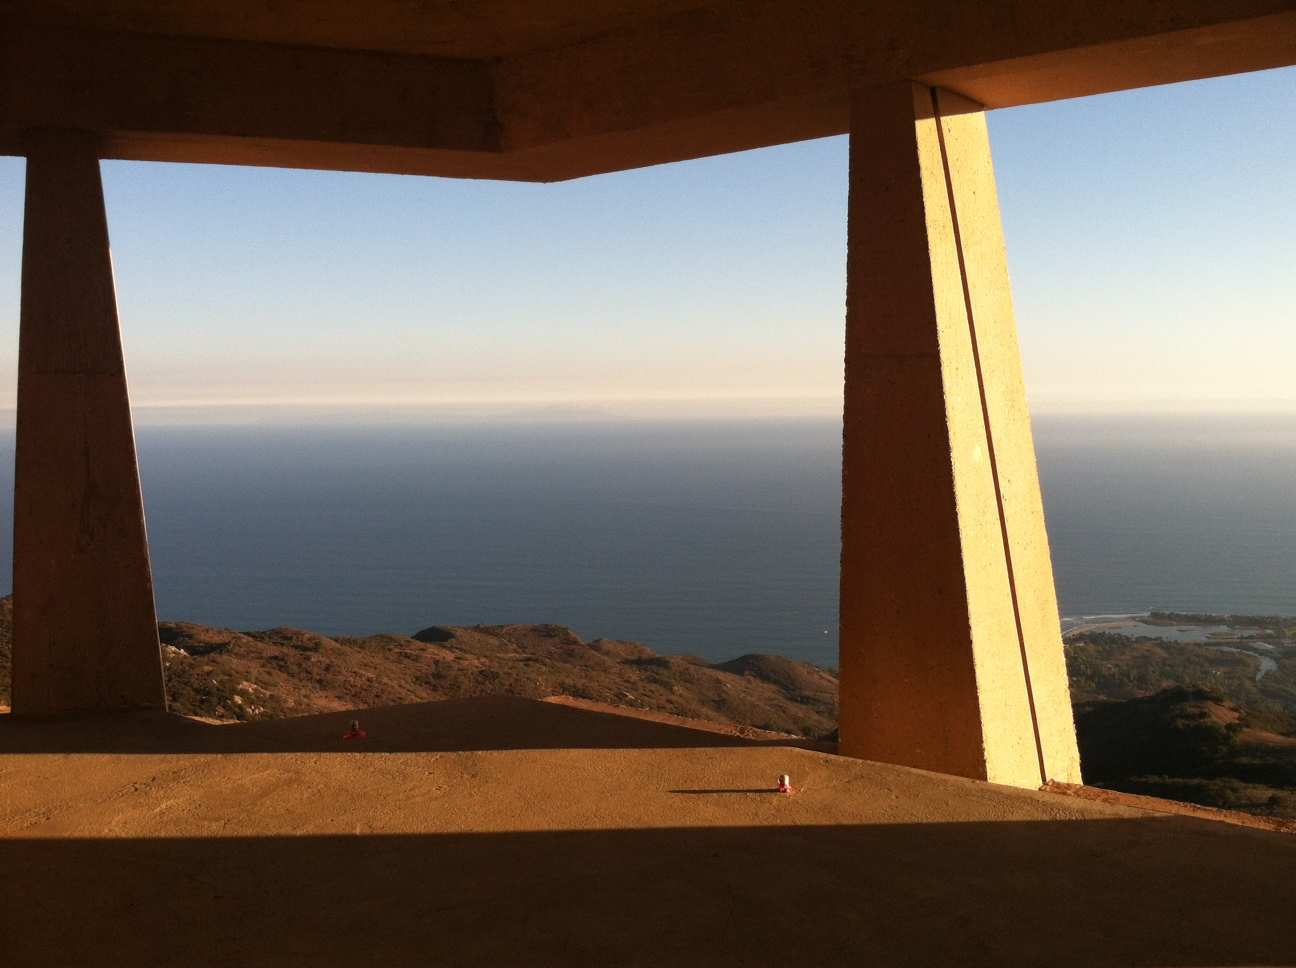 Architecture by Eric Lloyd Wright, Grandson of Frank Lloyd Wright, overlooking Pacific Ocean